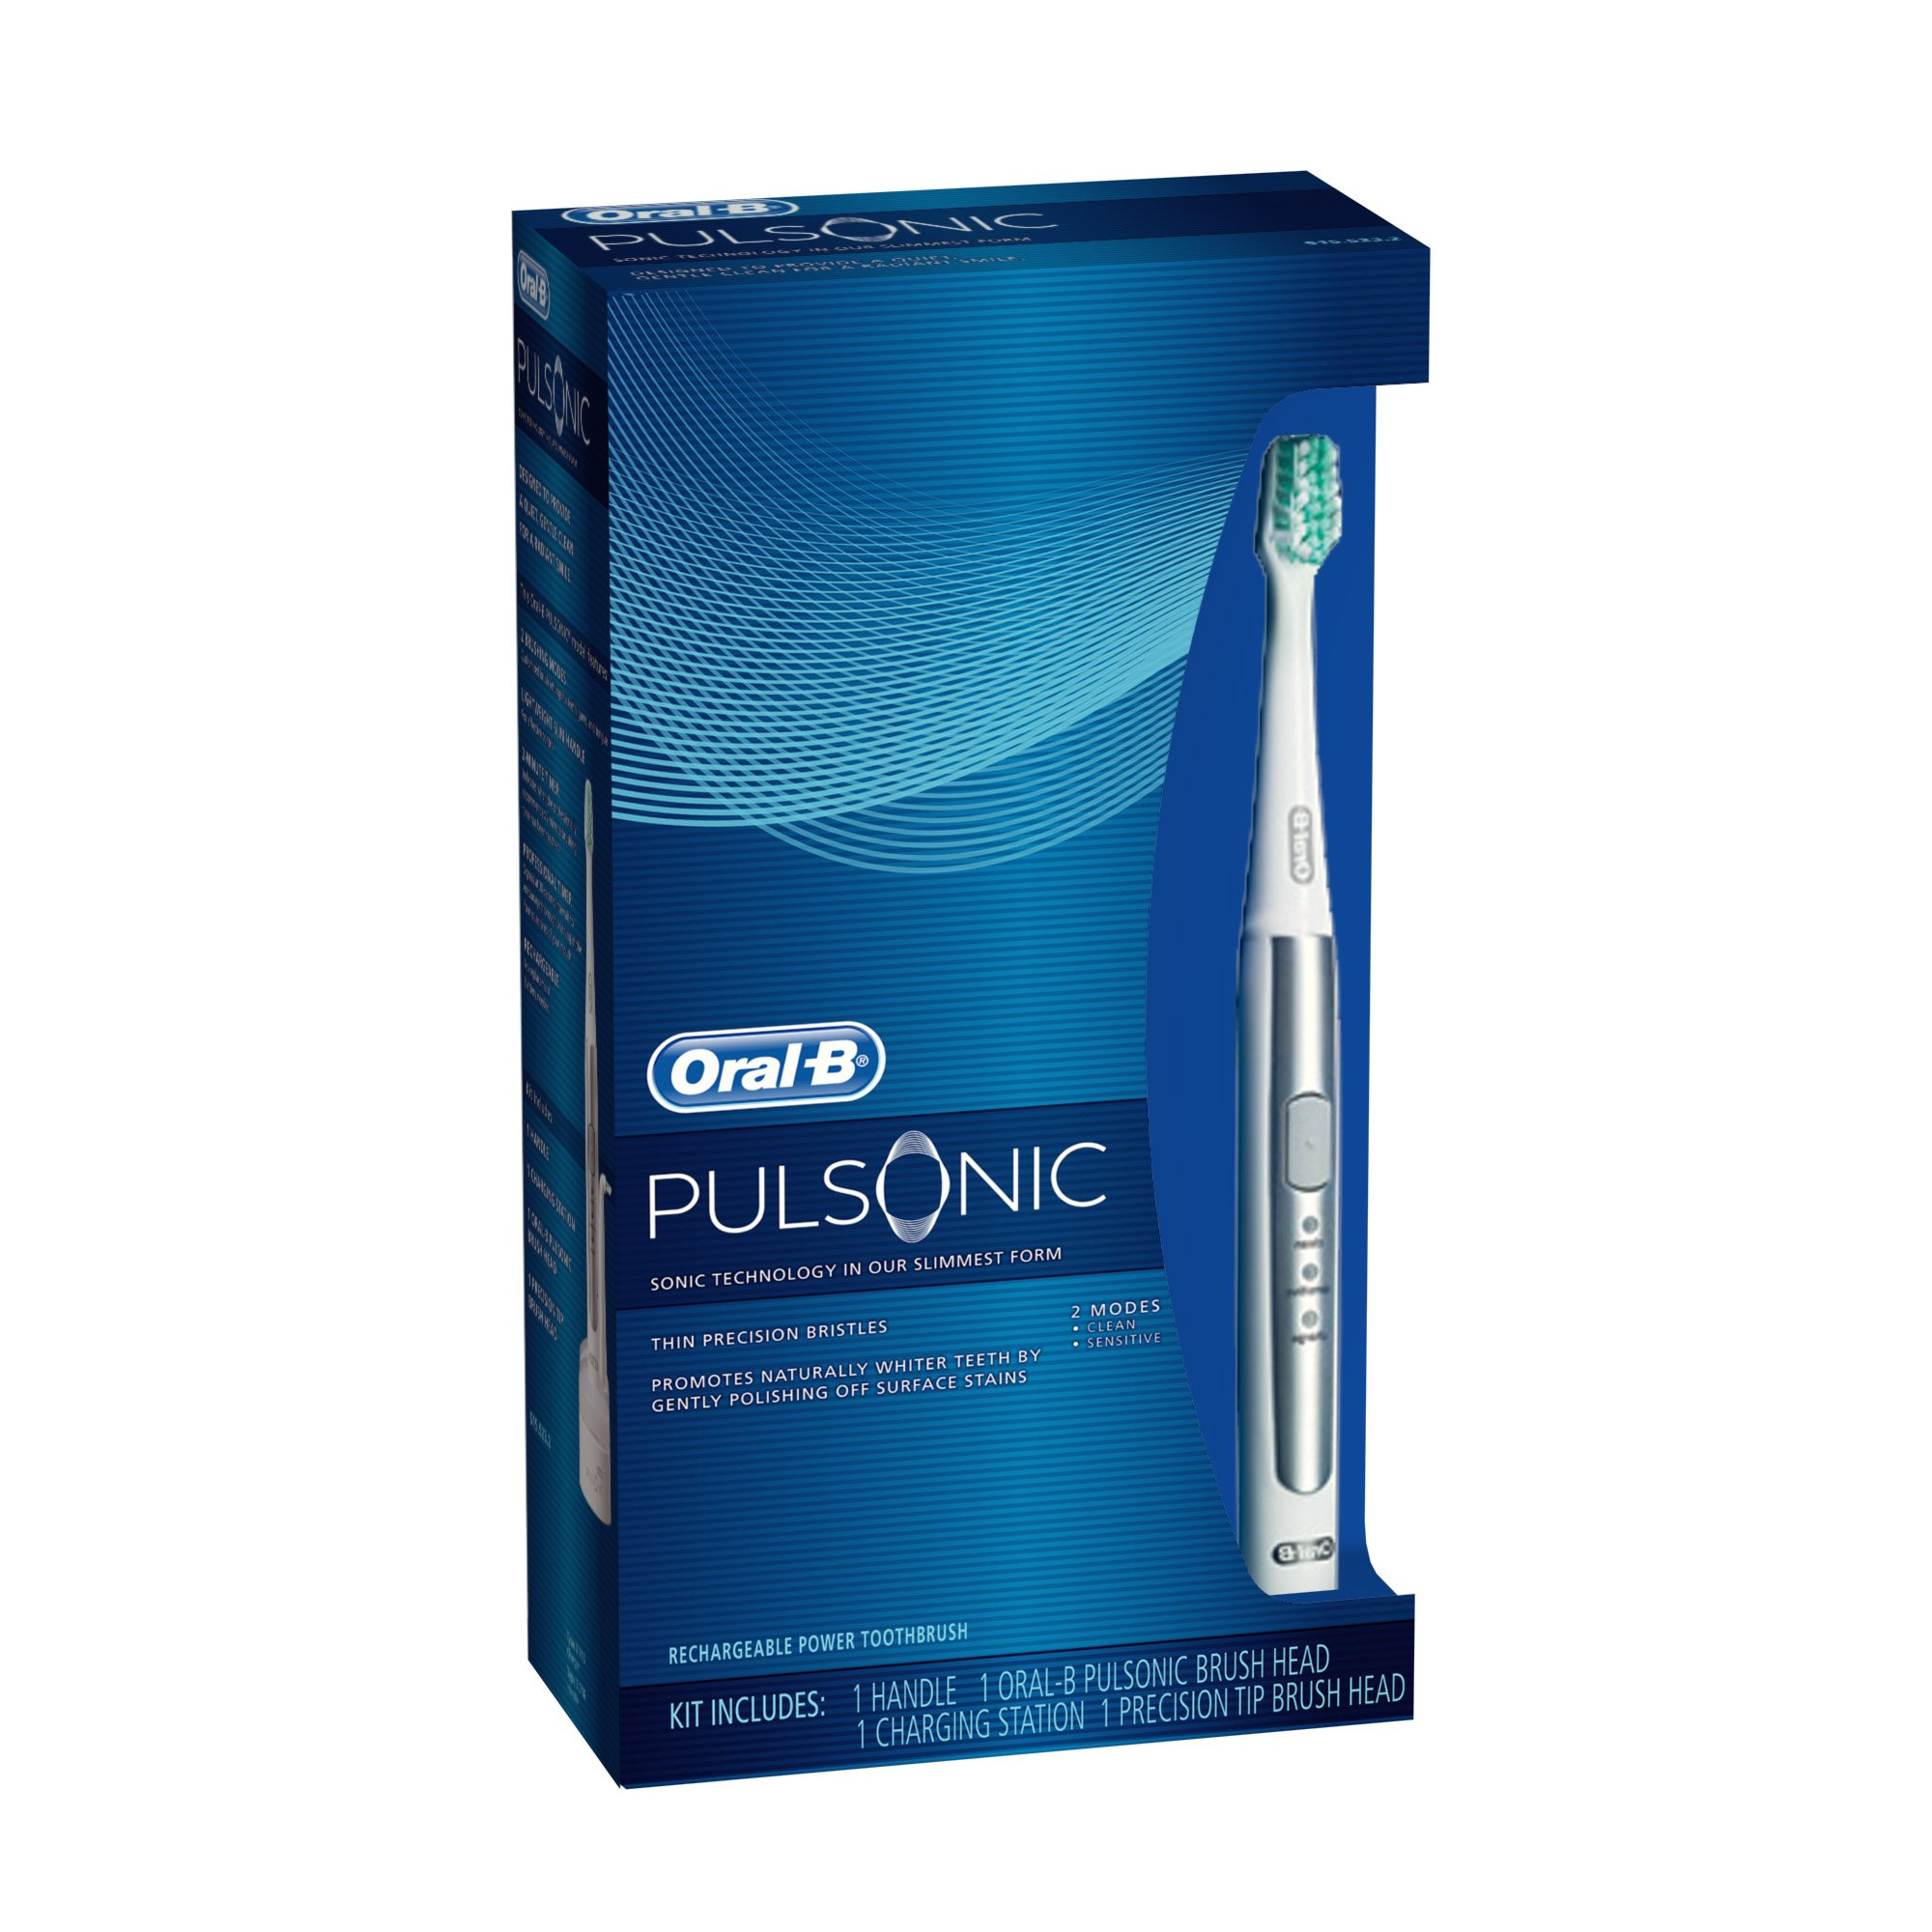 Oral-B Pc Bn Oral-B Elec. Toothbrush